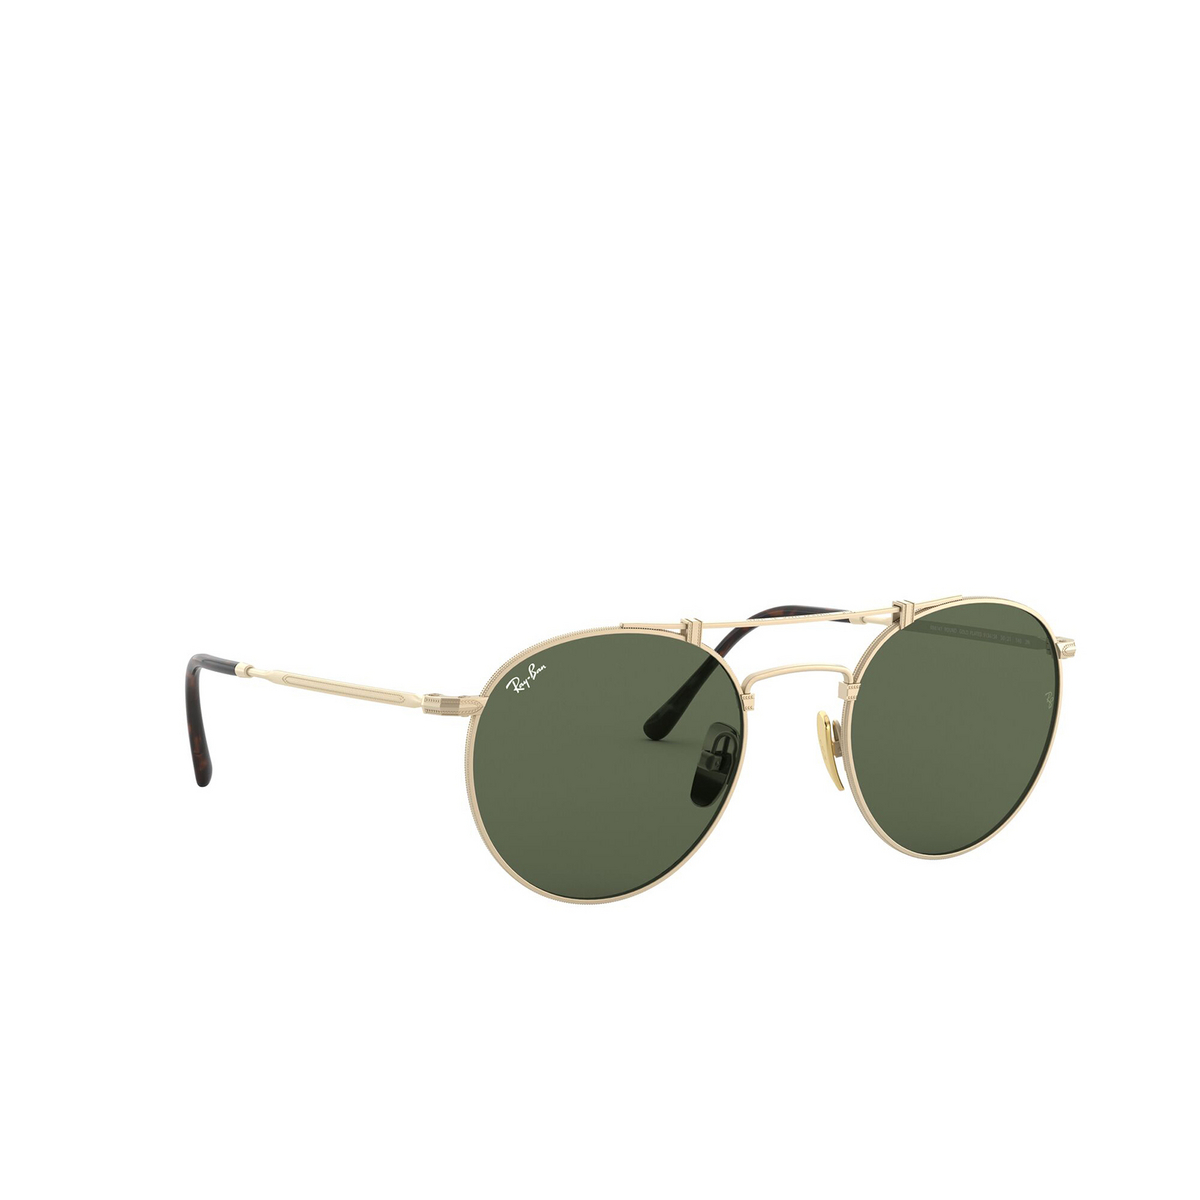 Ray-Ban® Round Sunglasses: Titanium RB8147 color Brushed Demi Gloss White Gold 913658 - three-quarters view.